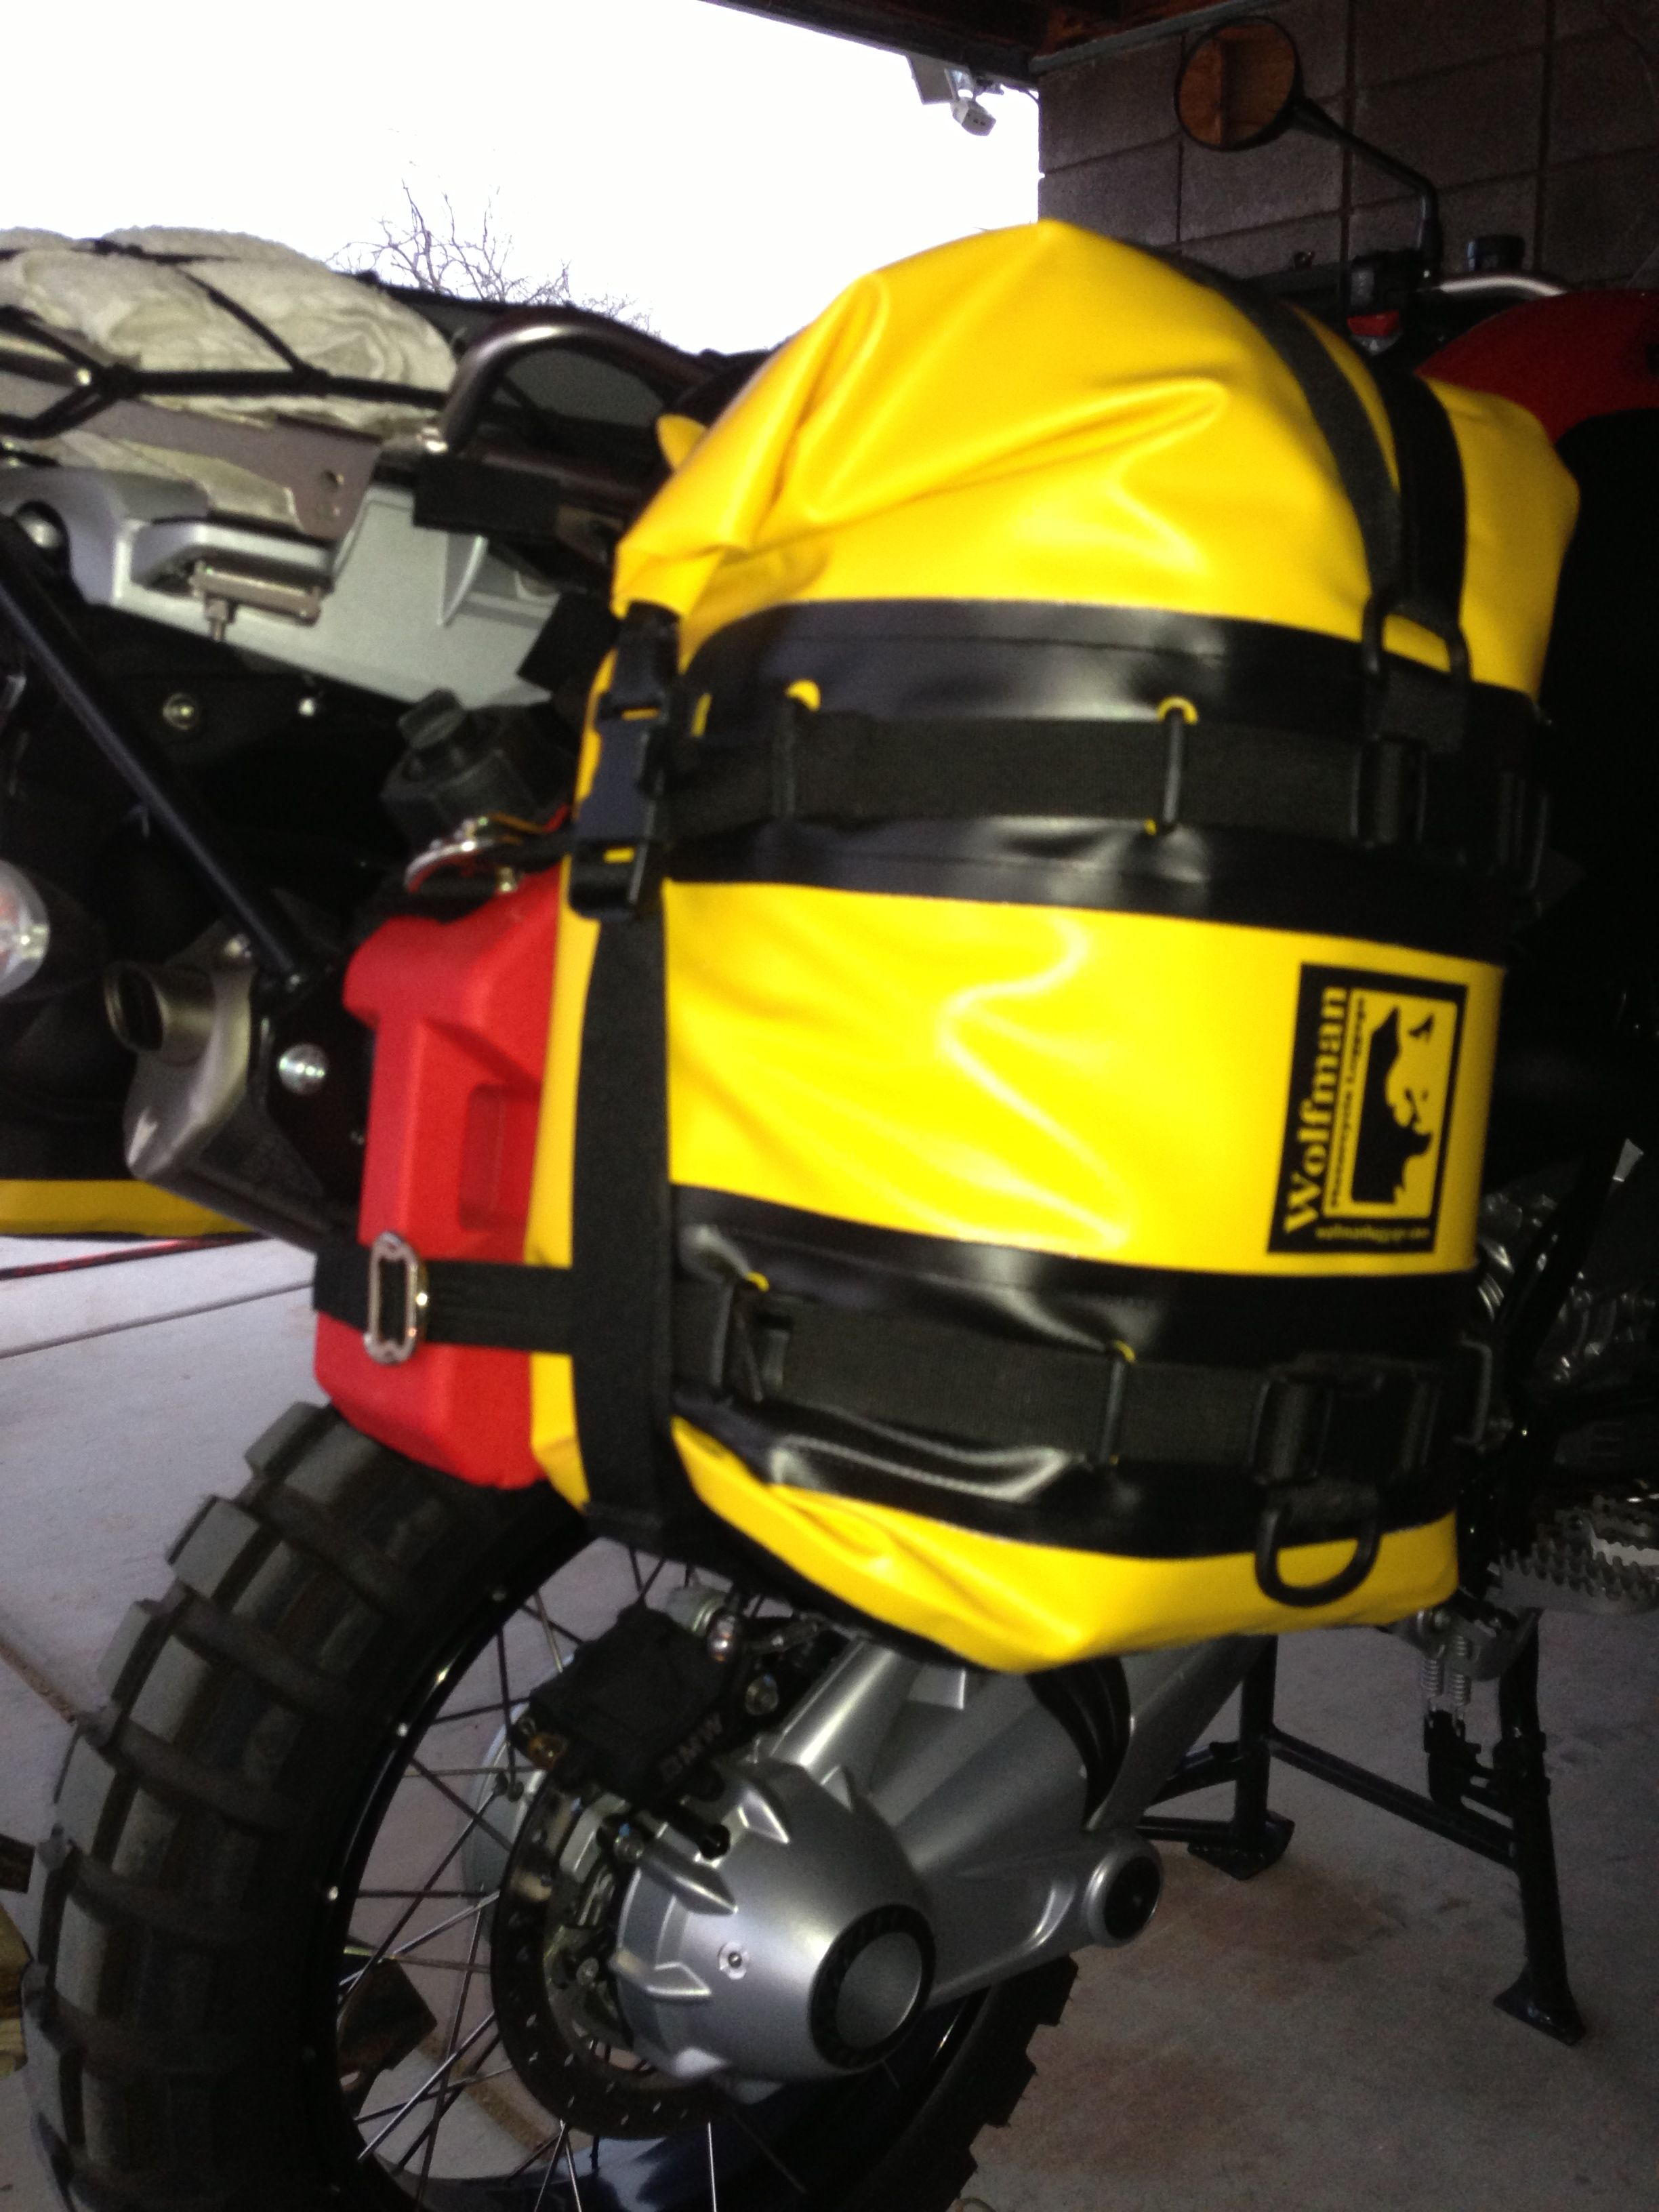 Bmw r1200gsa outfitted by halo off road with wolfman motorcycle luggage touratech